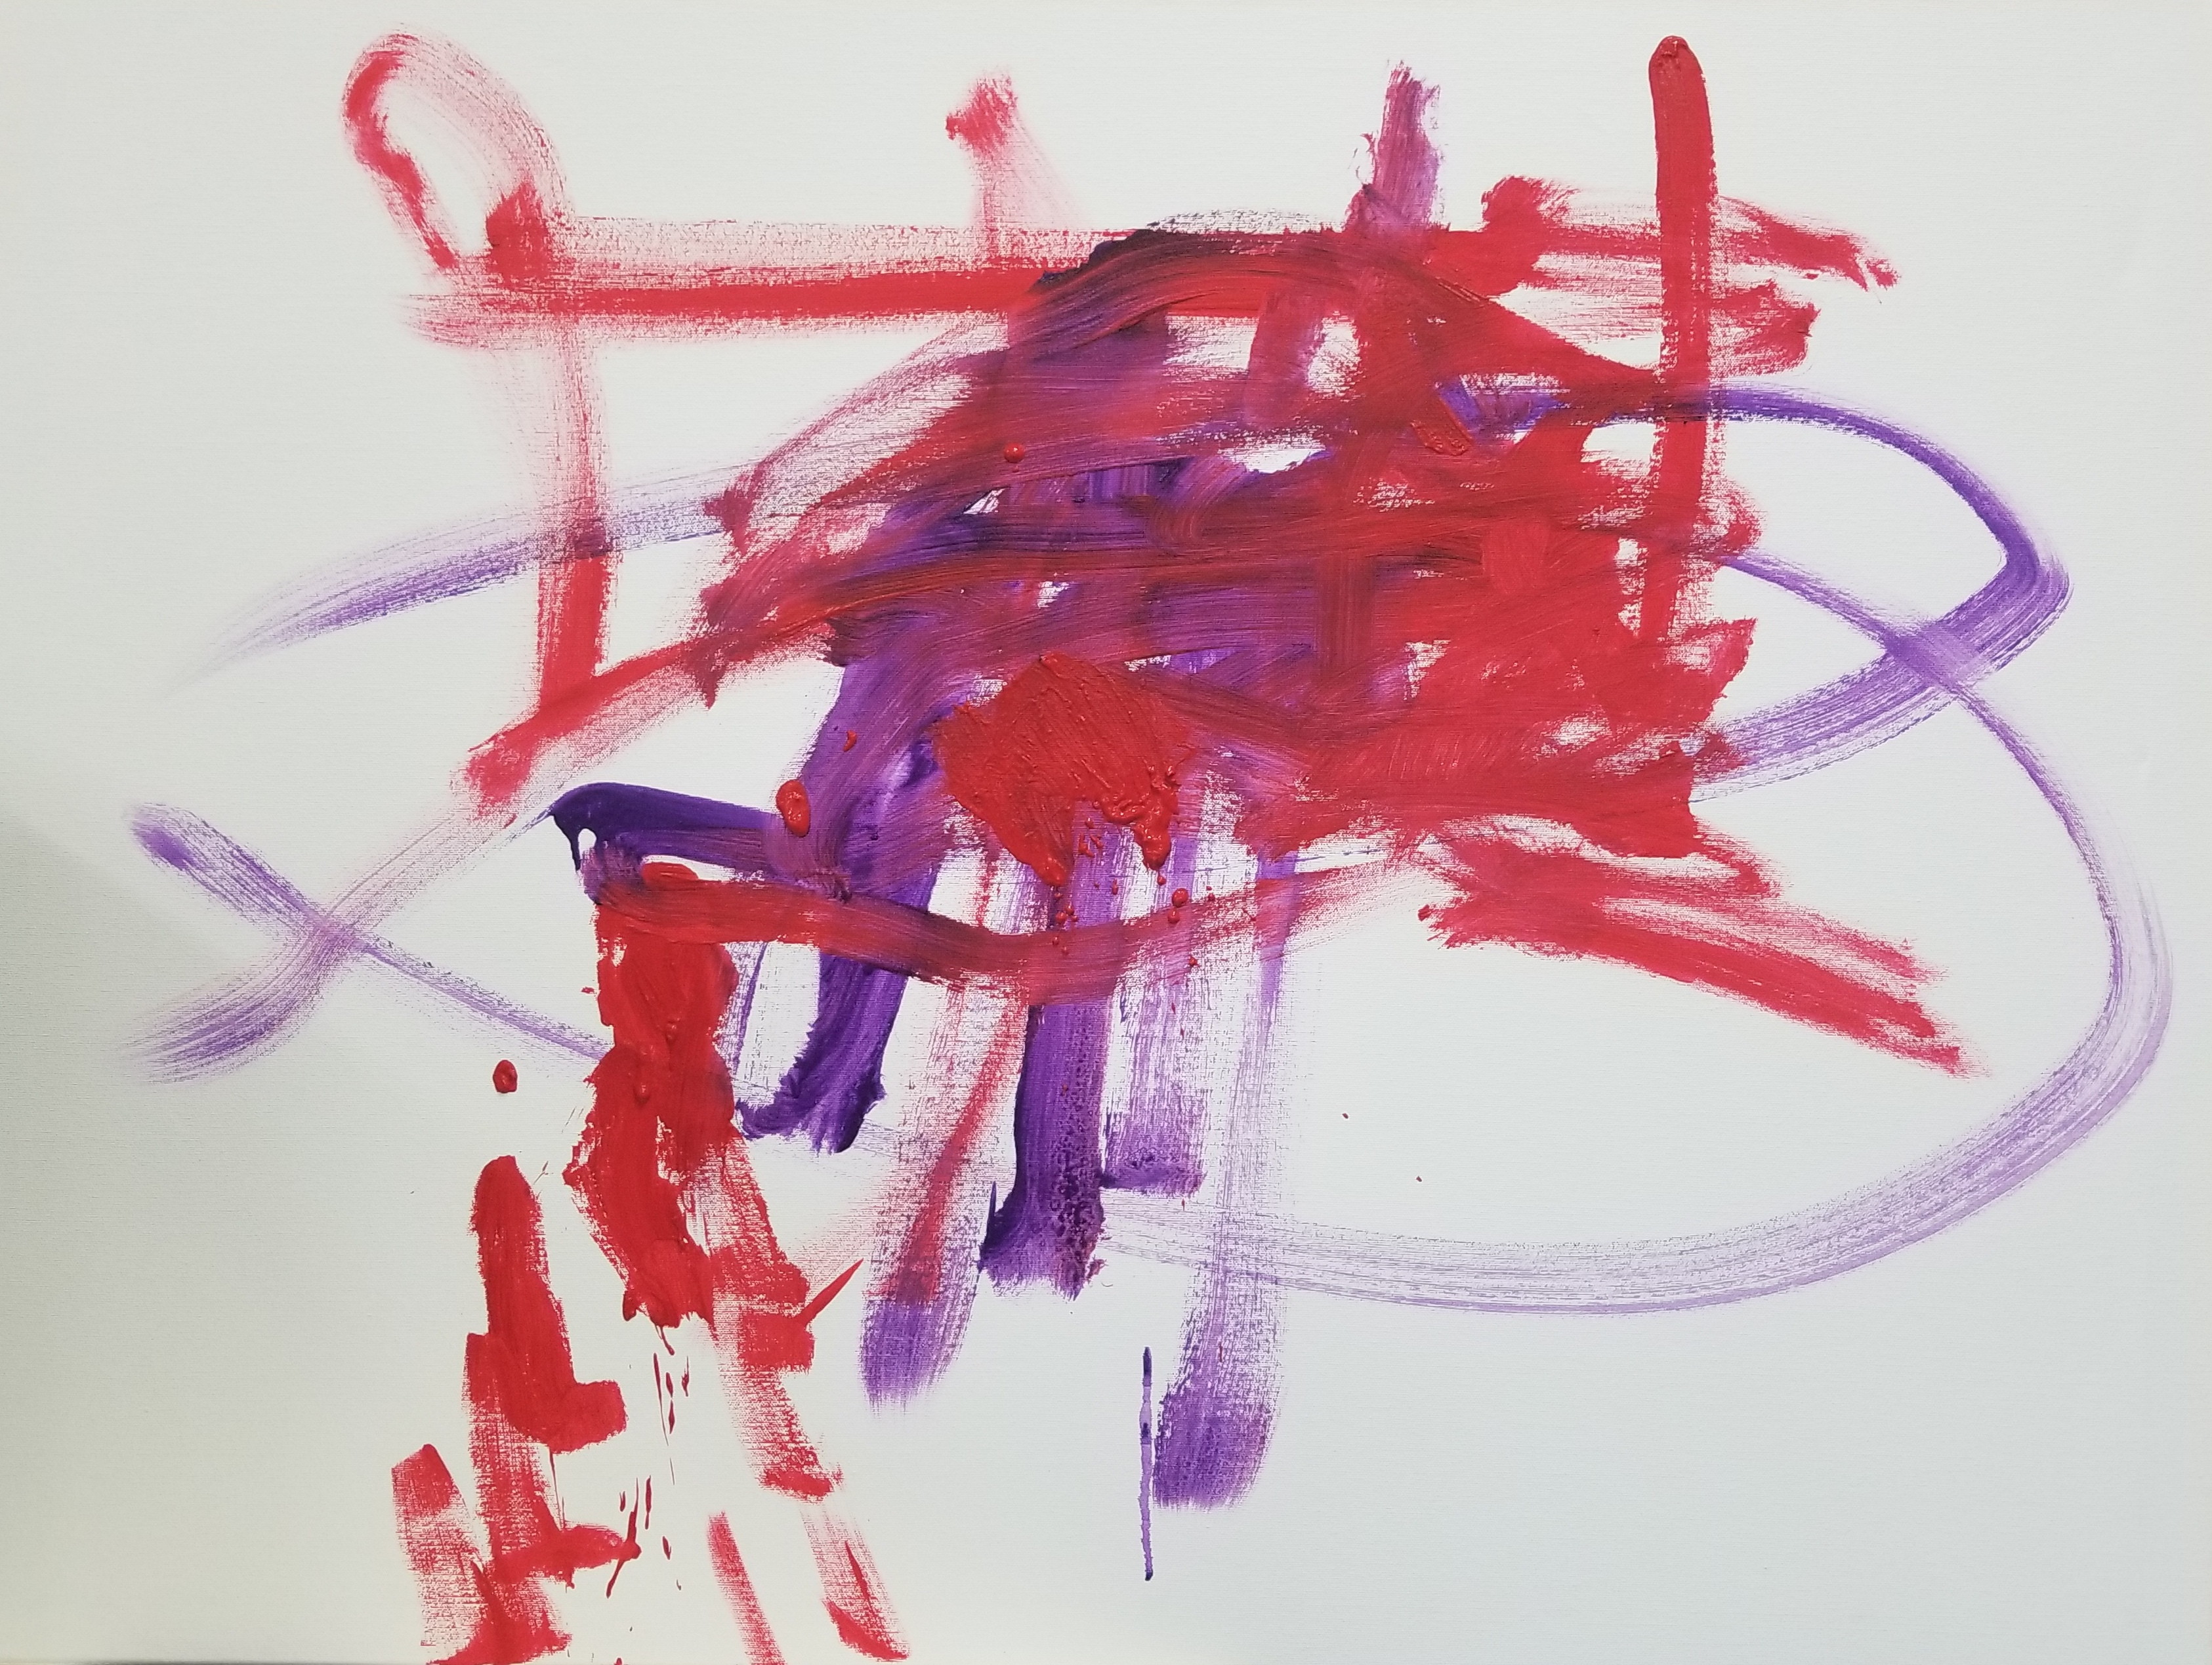 Abstract red and purple painting